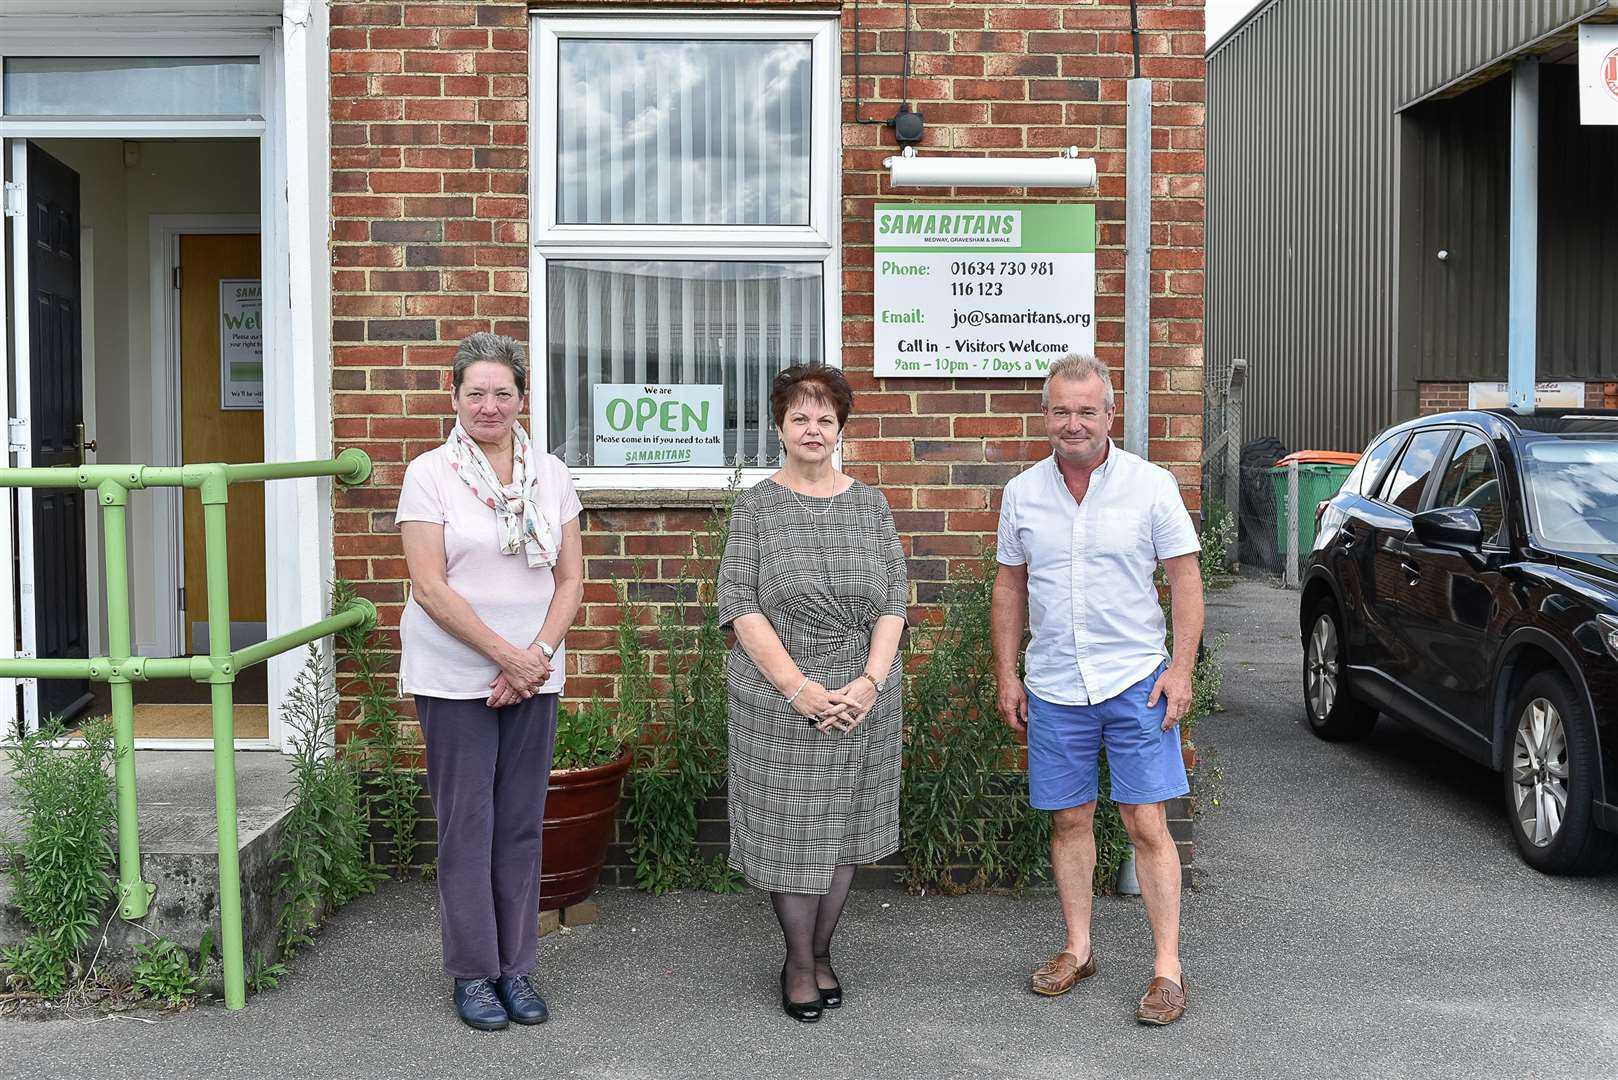 Samaritans Charity Director, Des McCarthy, and volunteers Wendy Bell & Georgina Laurie, at The Samaritans offices in Strood. Picture: Tony Jones (15193641)